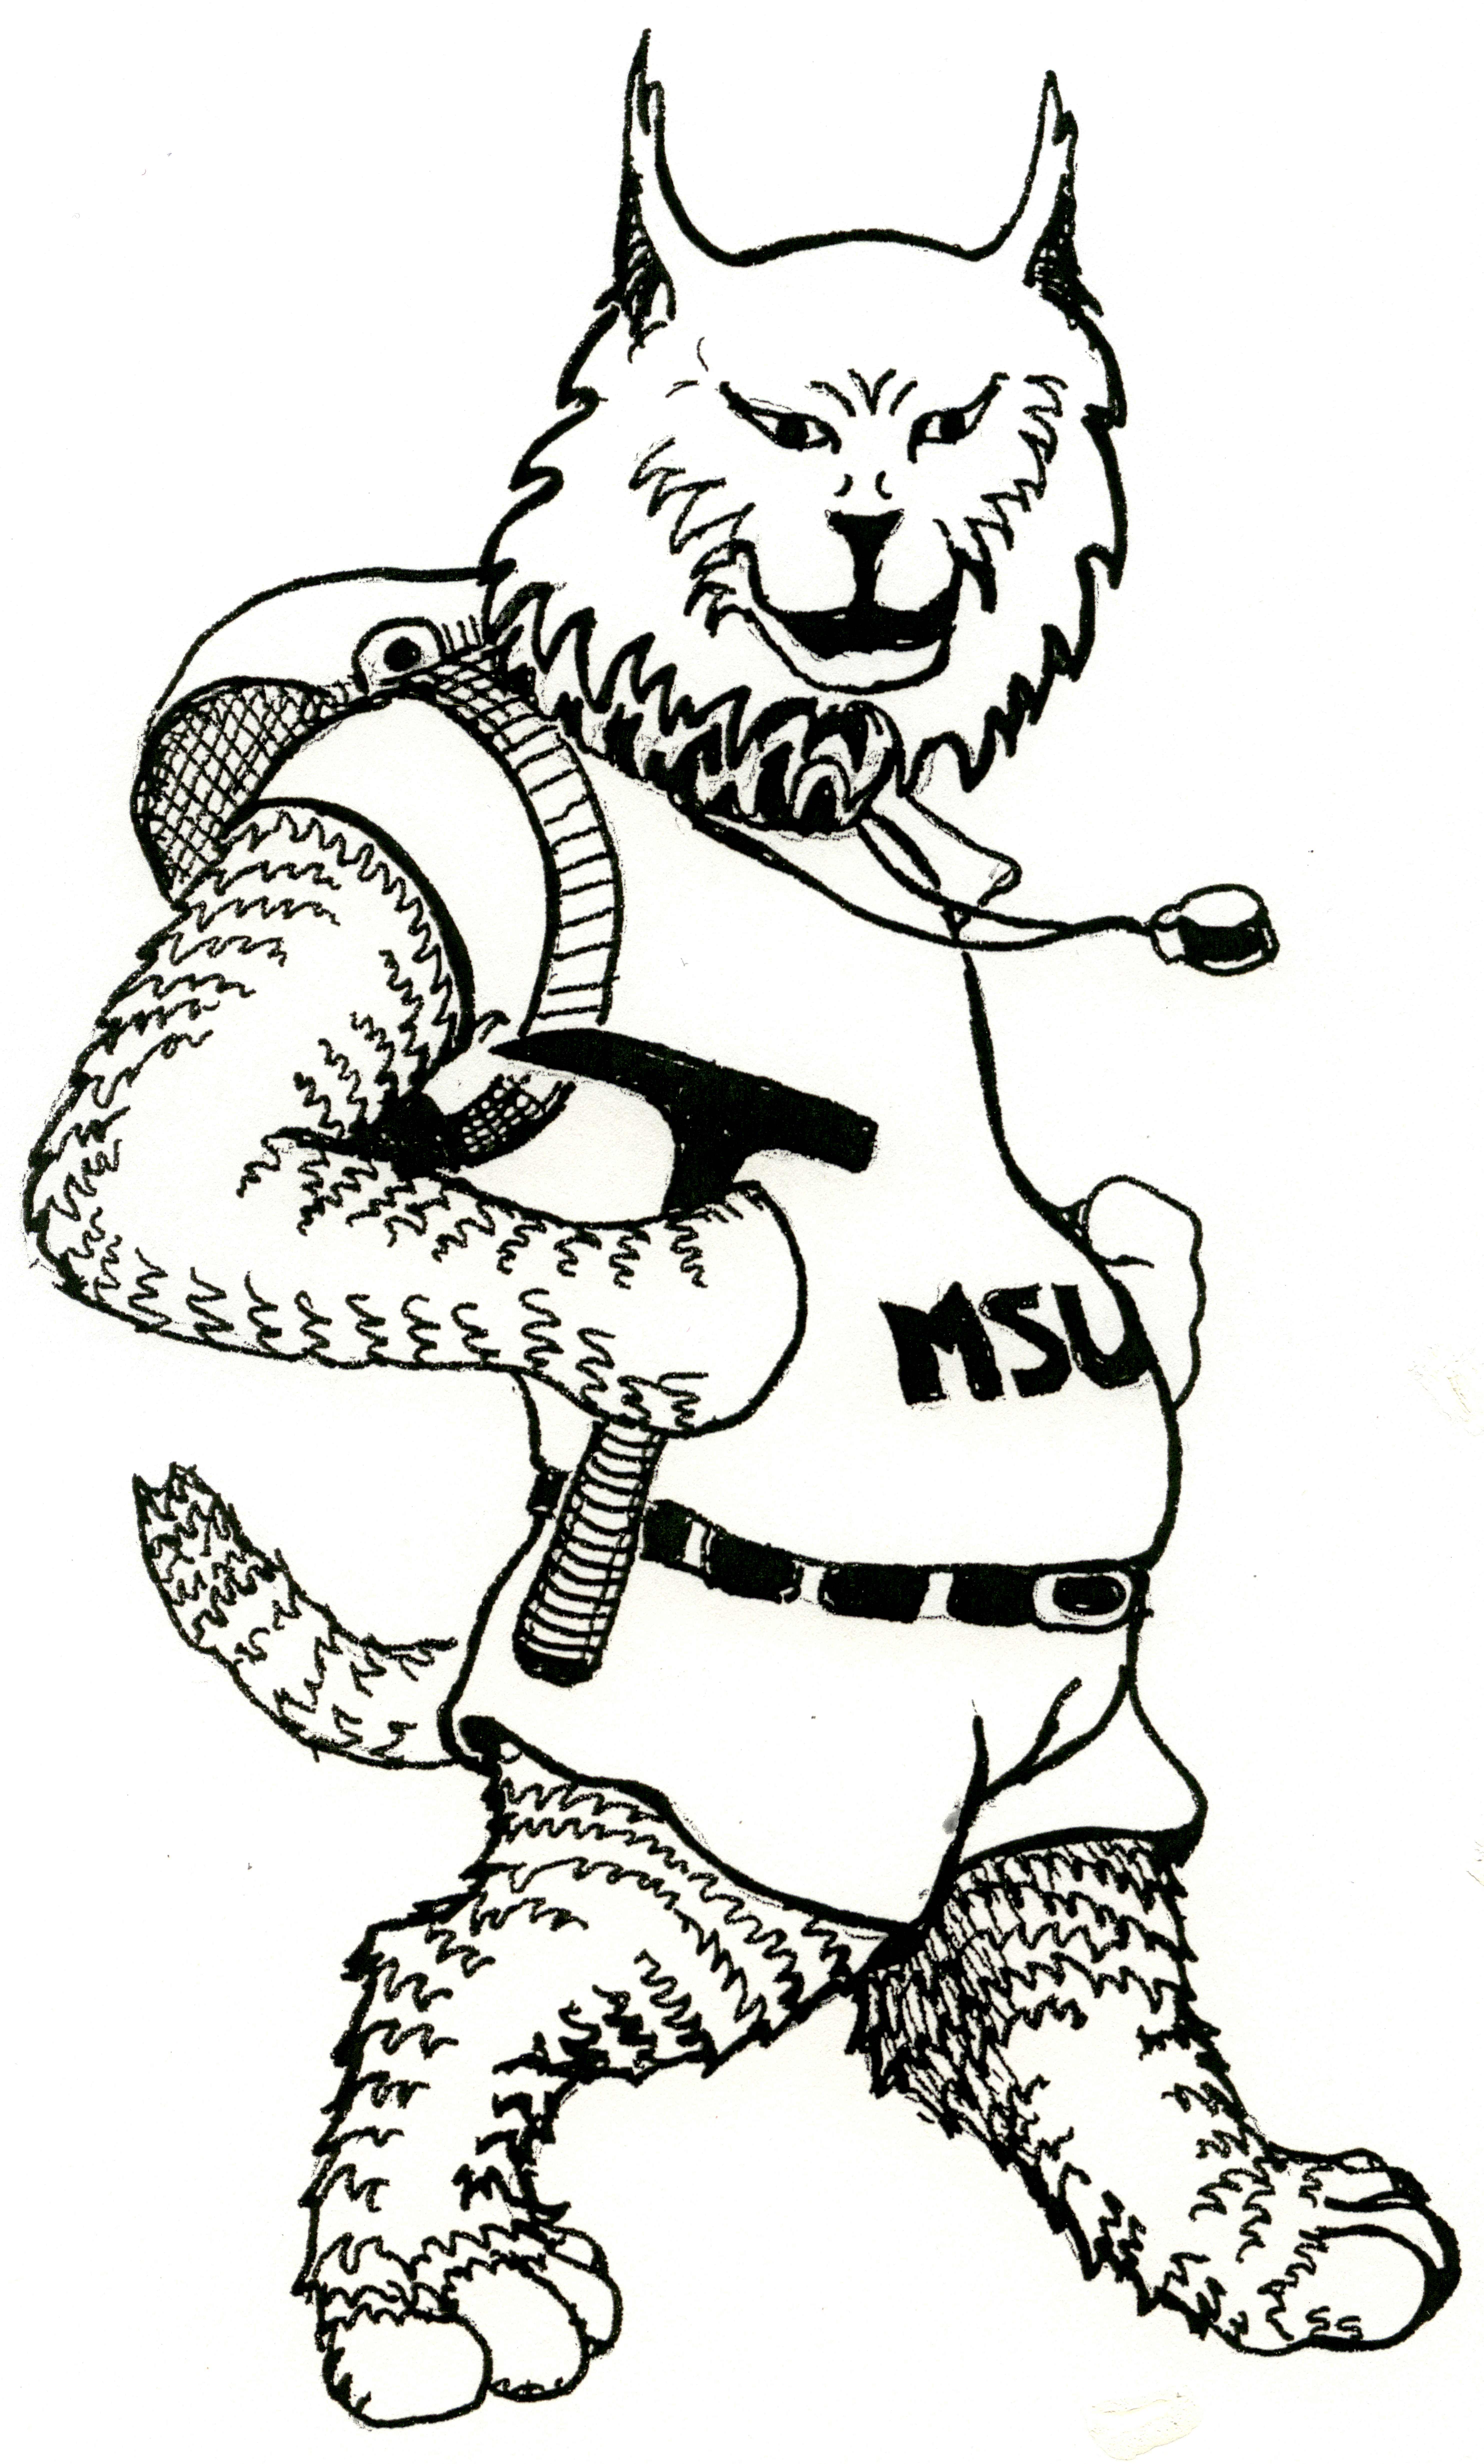 Cartoon image of chubby anthropomorphic bobcat with MSU T-shirt and geology hammer